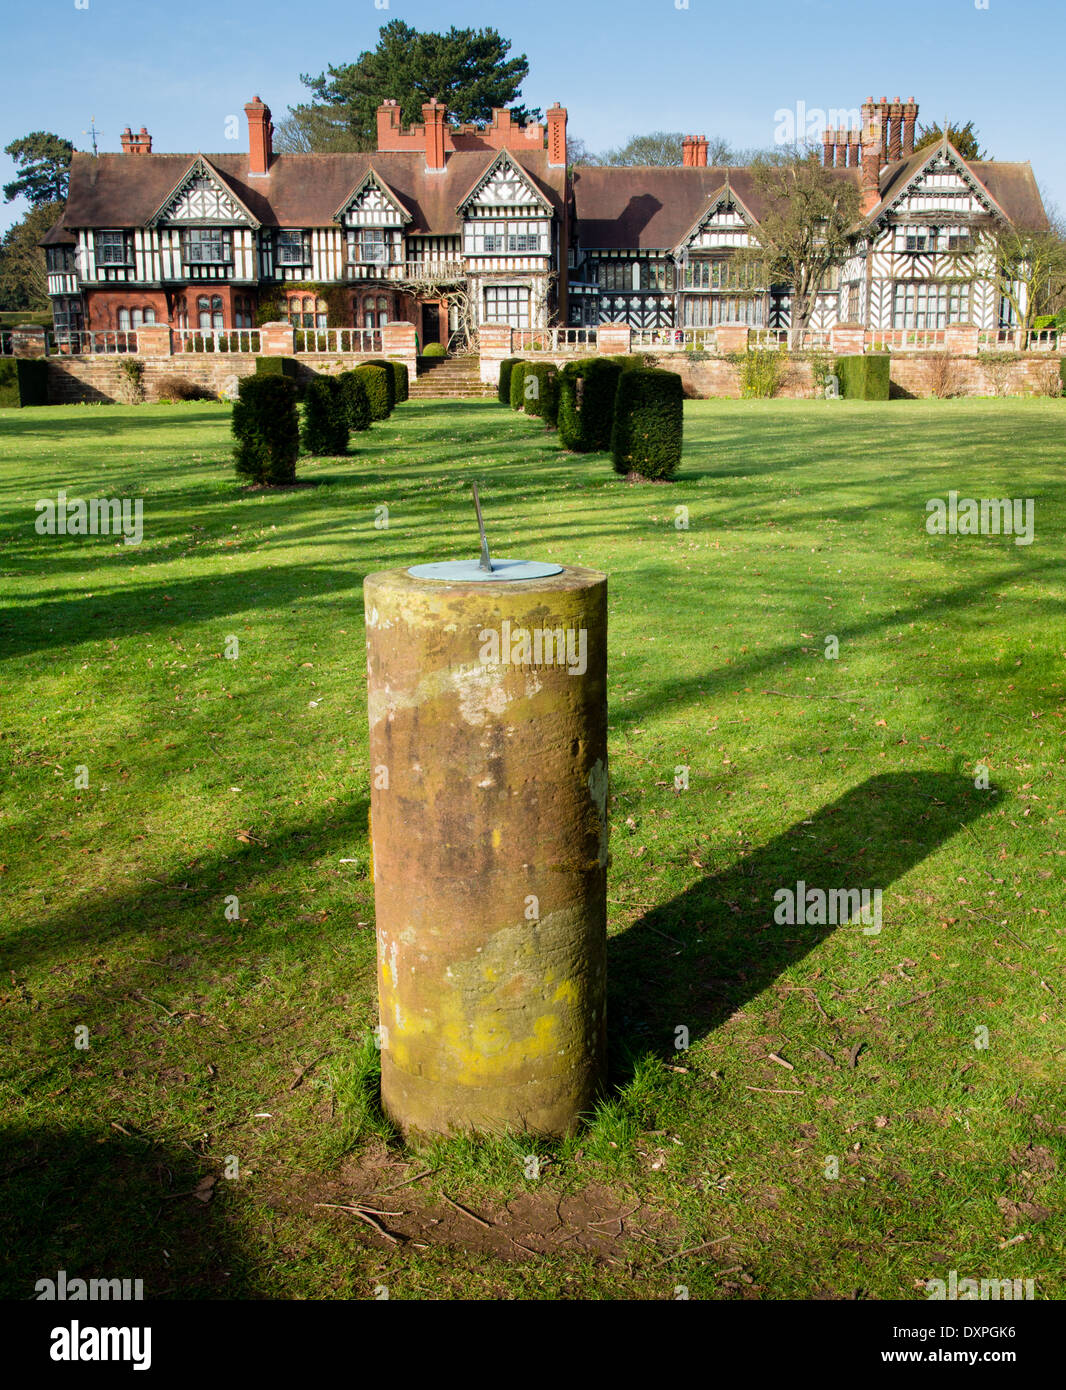 Sundial in the topiary garden at Wightwick Manor a Victorian Arts and Crafts house near Wolverhampton UK - Stock Image